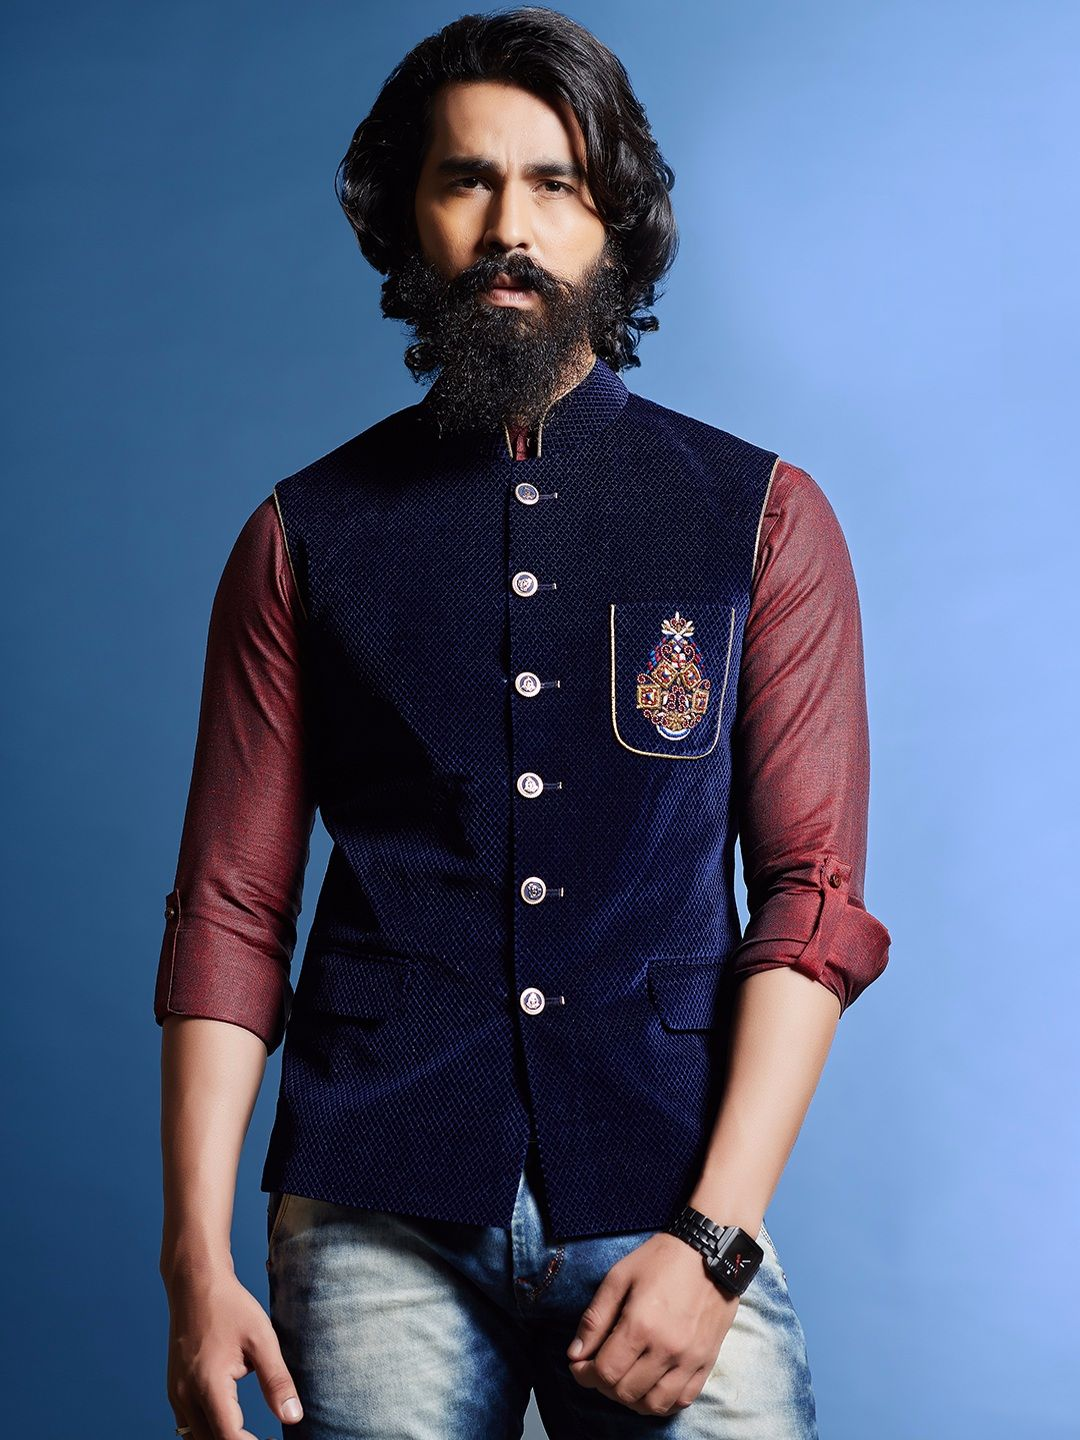 simple jacket goes a long way | Indian men fashion, Ethnic ...